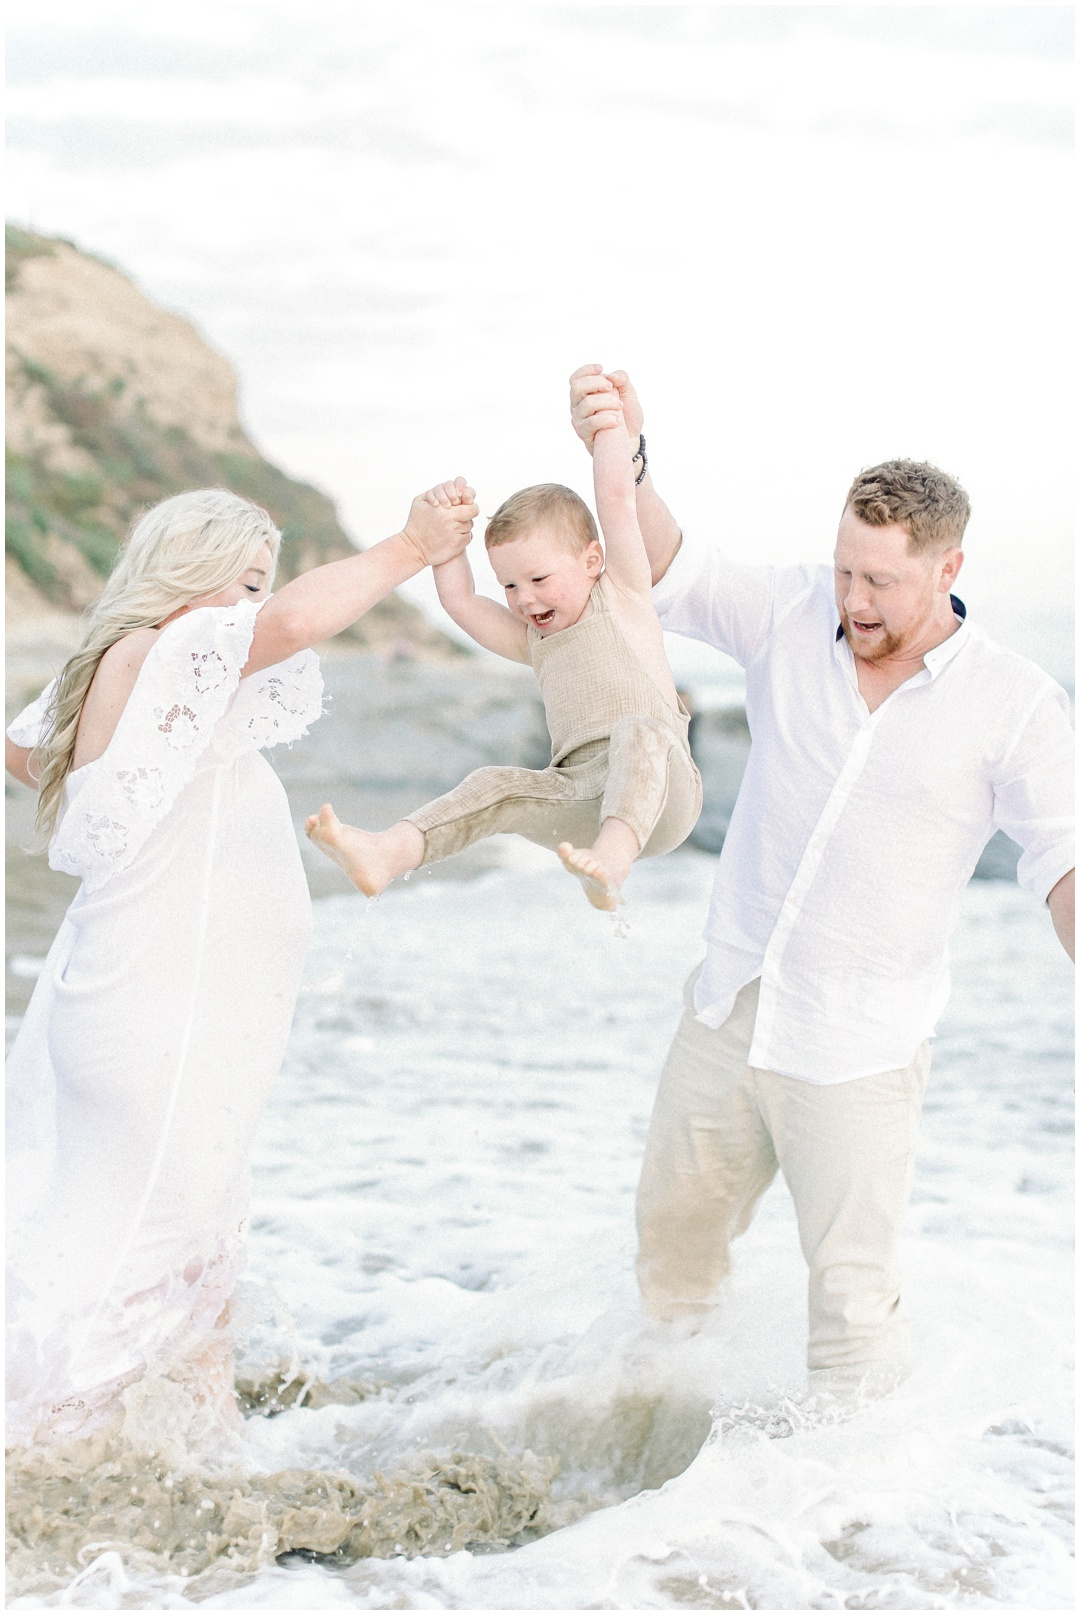 Newport_Beach_Newborn_Light_Airy_Natural_Photographer_Newport_Beach_Photographer_Orange_County_Family_Photographer_Cori_Kleckner_Photography_Newport_Beach_Photographer_Maternity_kole_calhoun56_kole_calhoun_Jennifer_Calhoun_Knox_Calhoun_3717.jpg